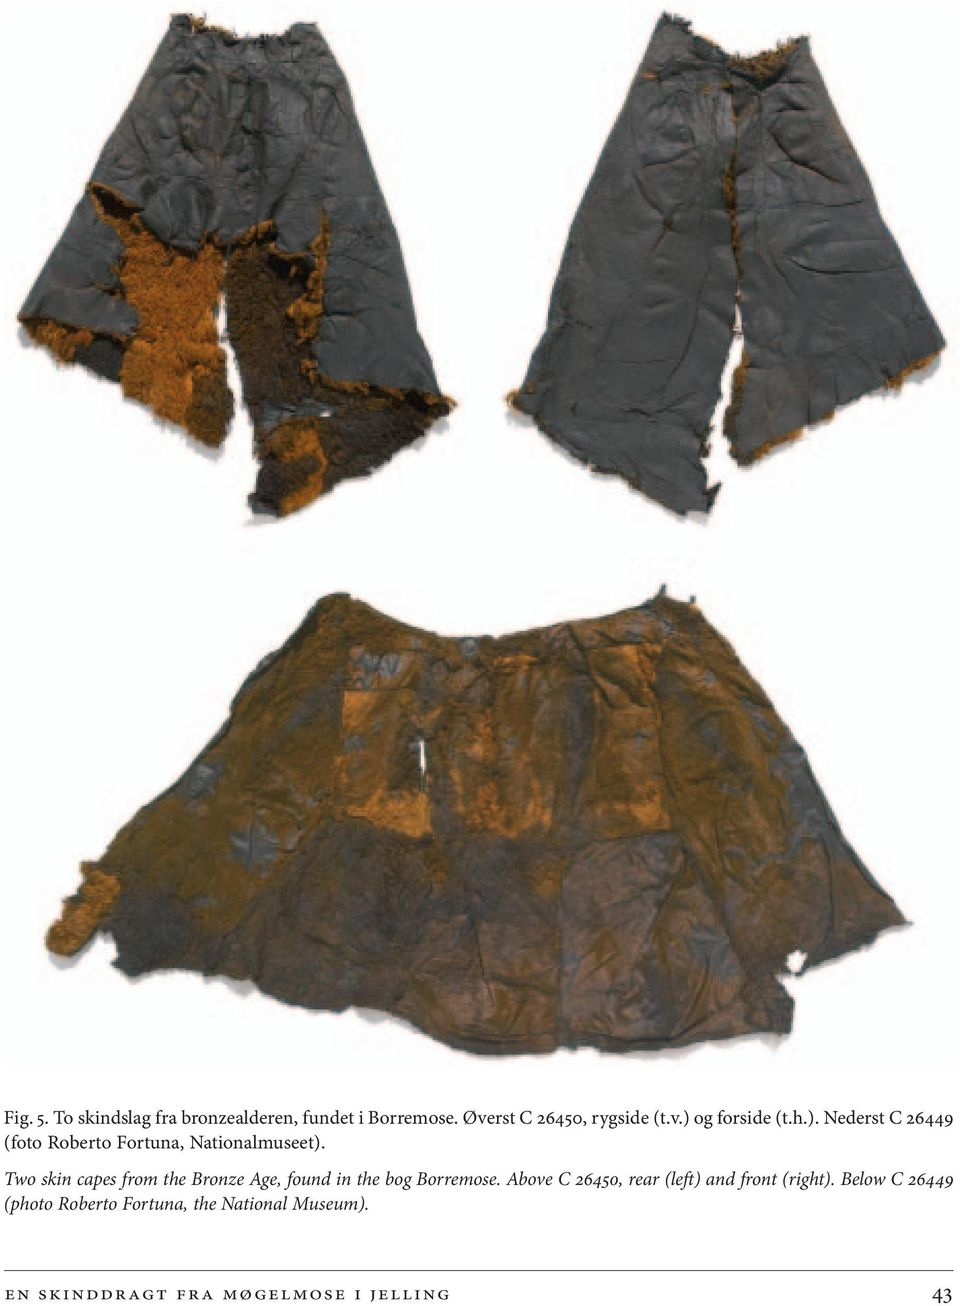 Two skin capes from the Bronze Age, found in the bog Borremose.